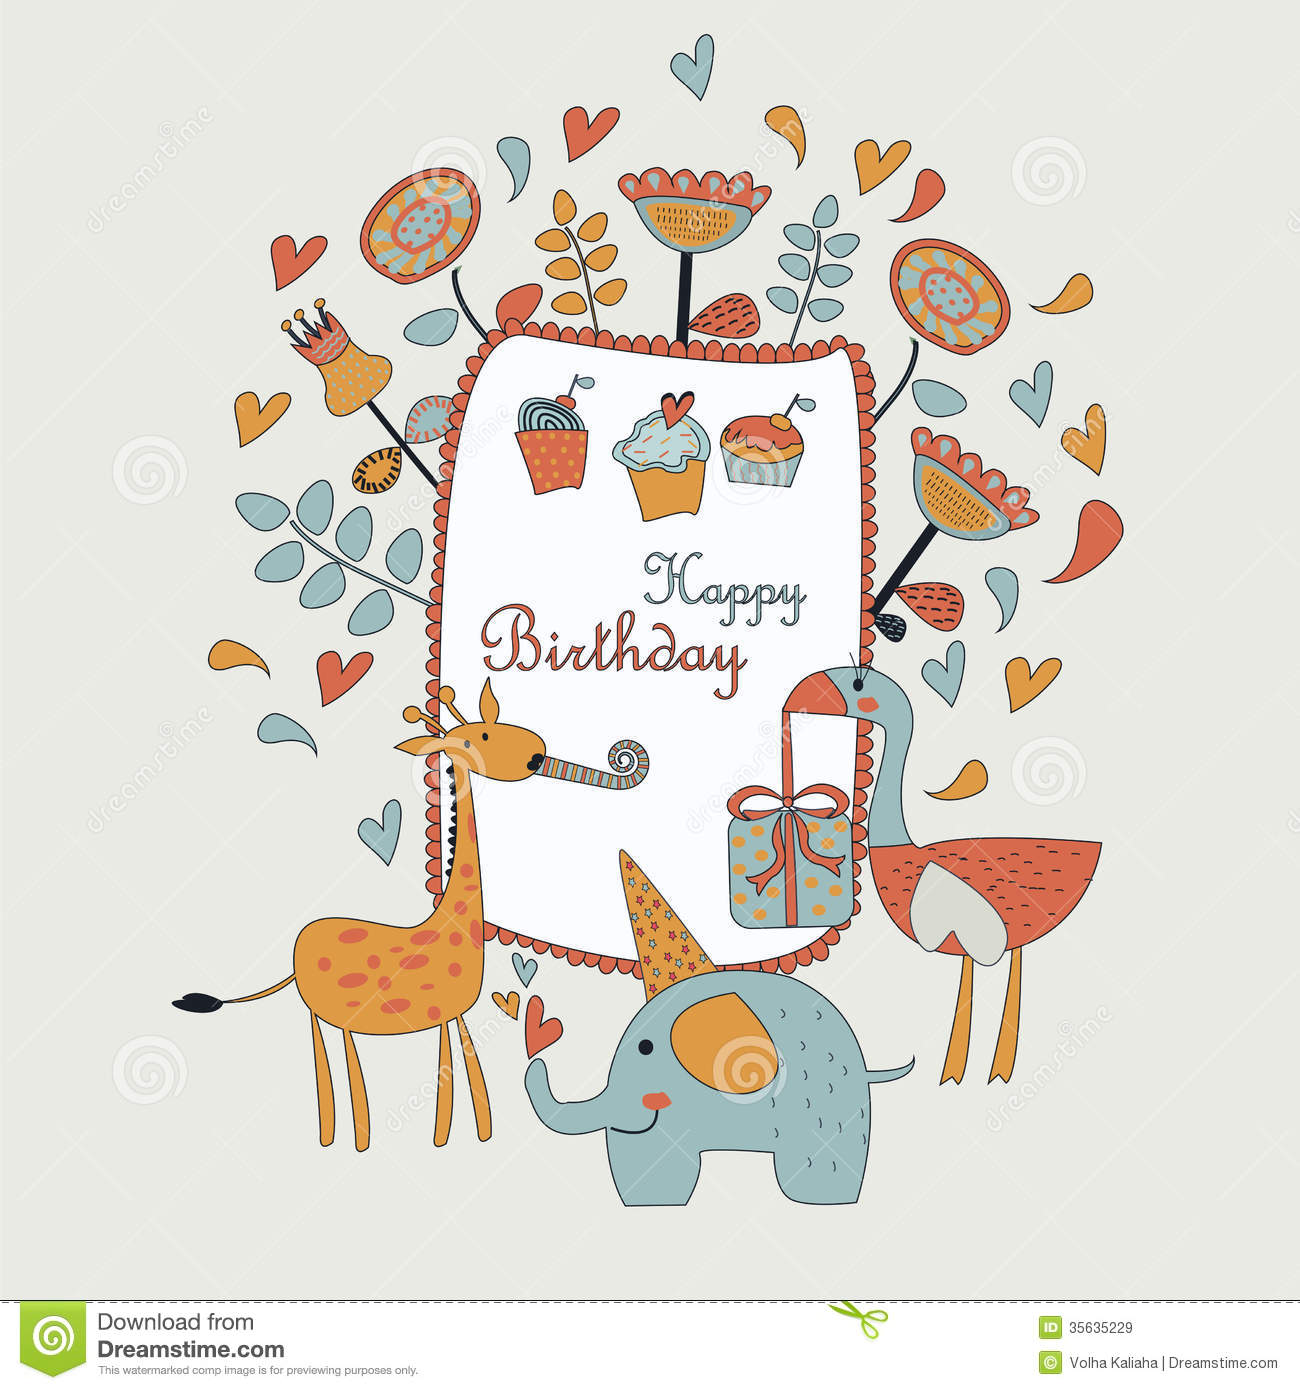 Happy Birthday Greeting Card With Cute Elephant Ostriche Giraffe Flowers Cupcakes And Hearts In Cartoon Style